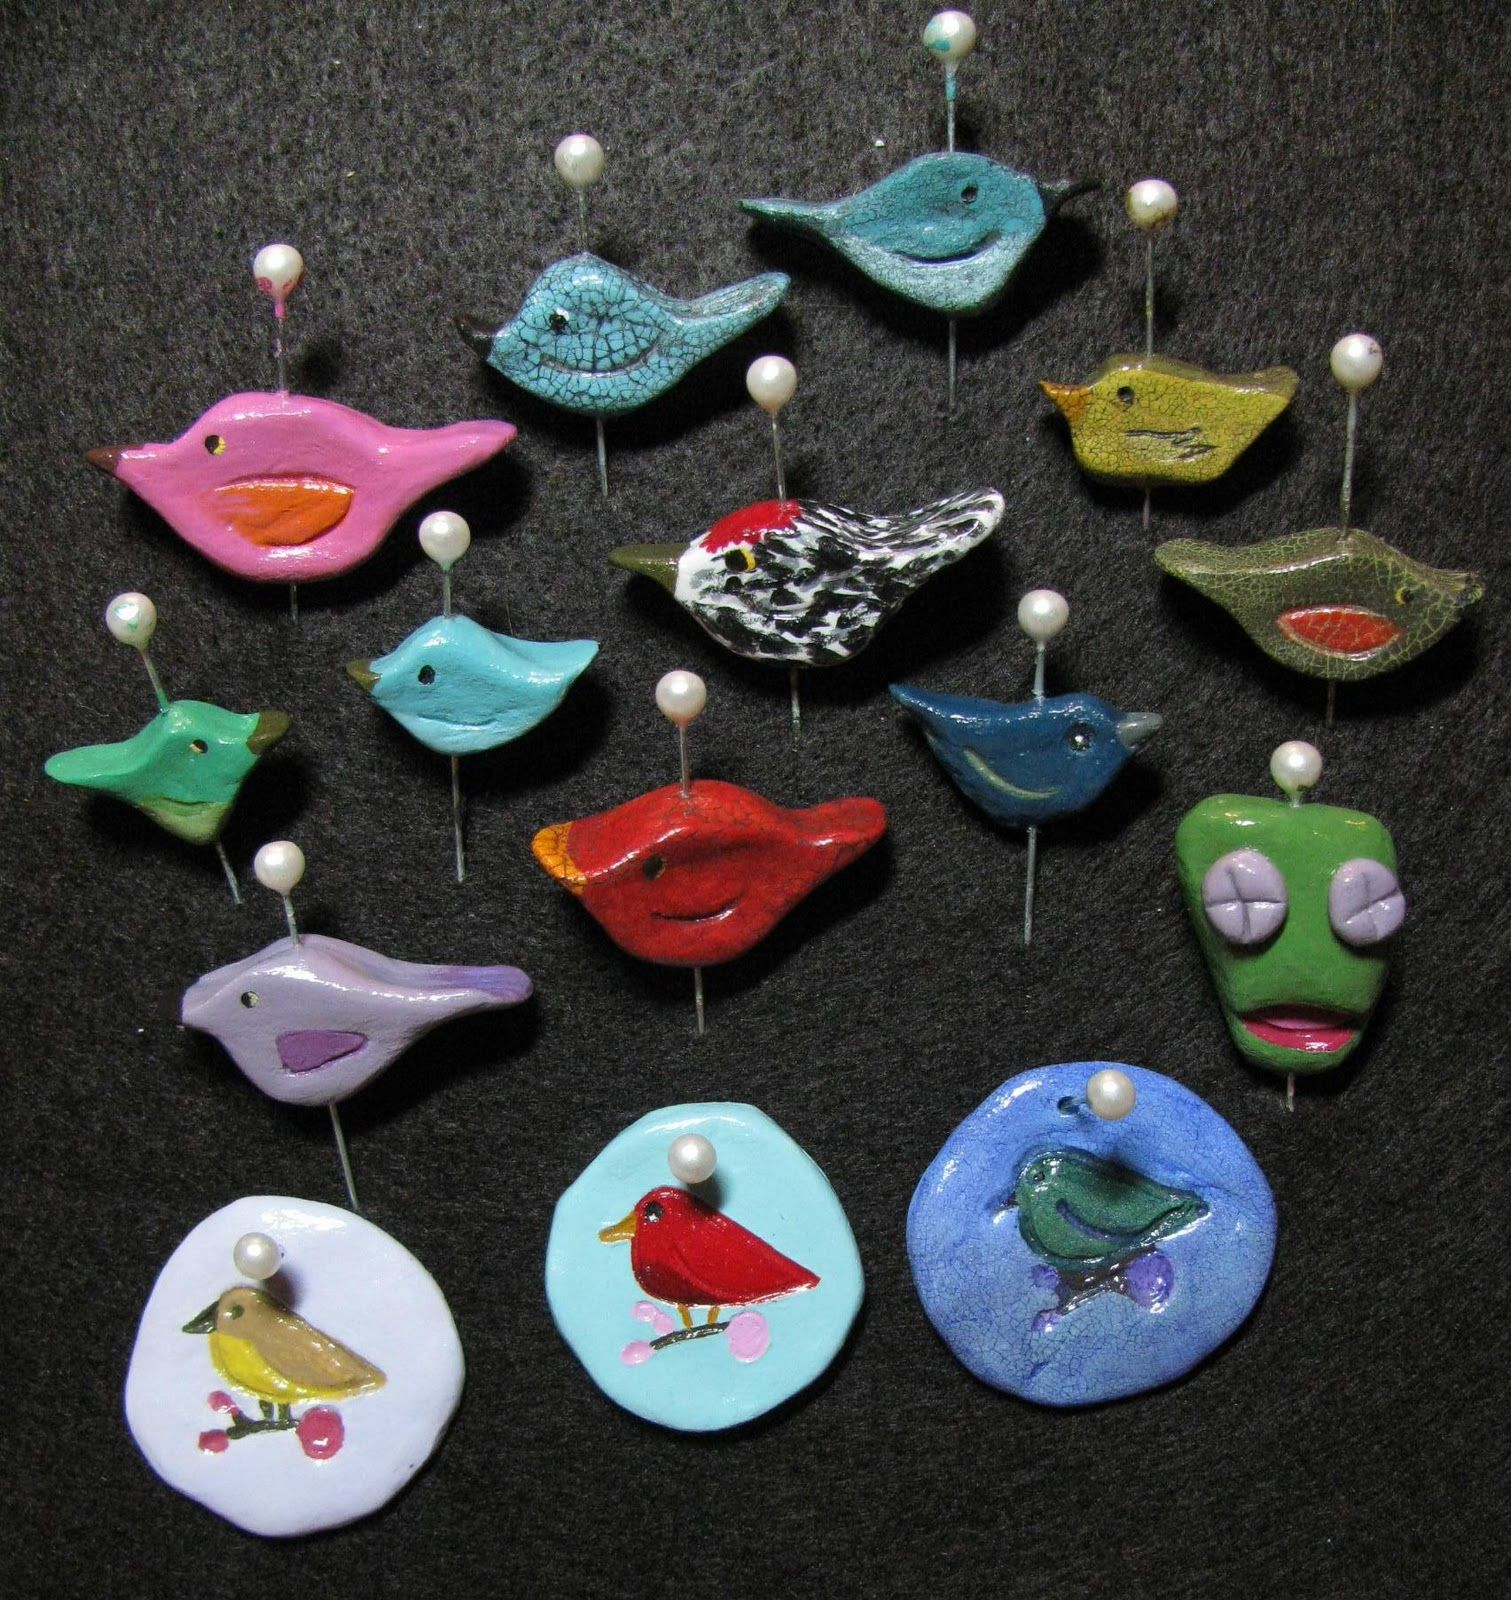 Ex Post Facto Jewelry: The Paper Clay Birds Are Finished